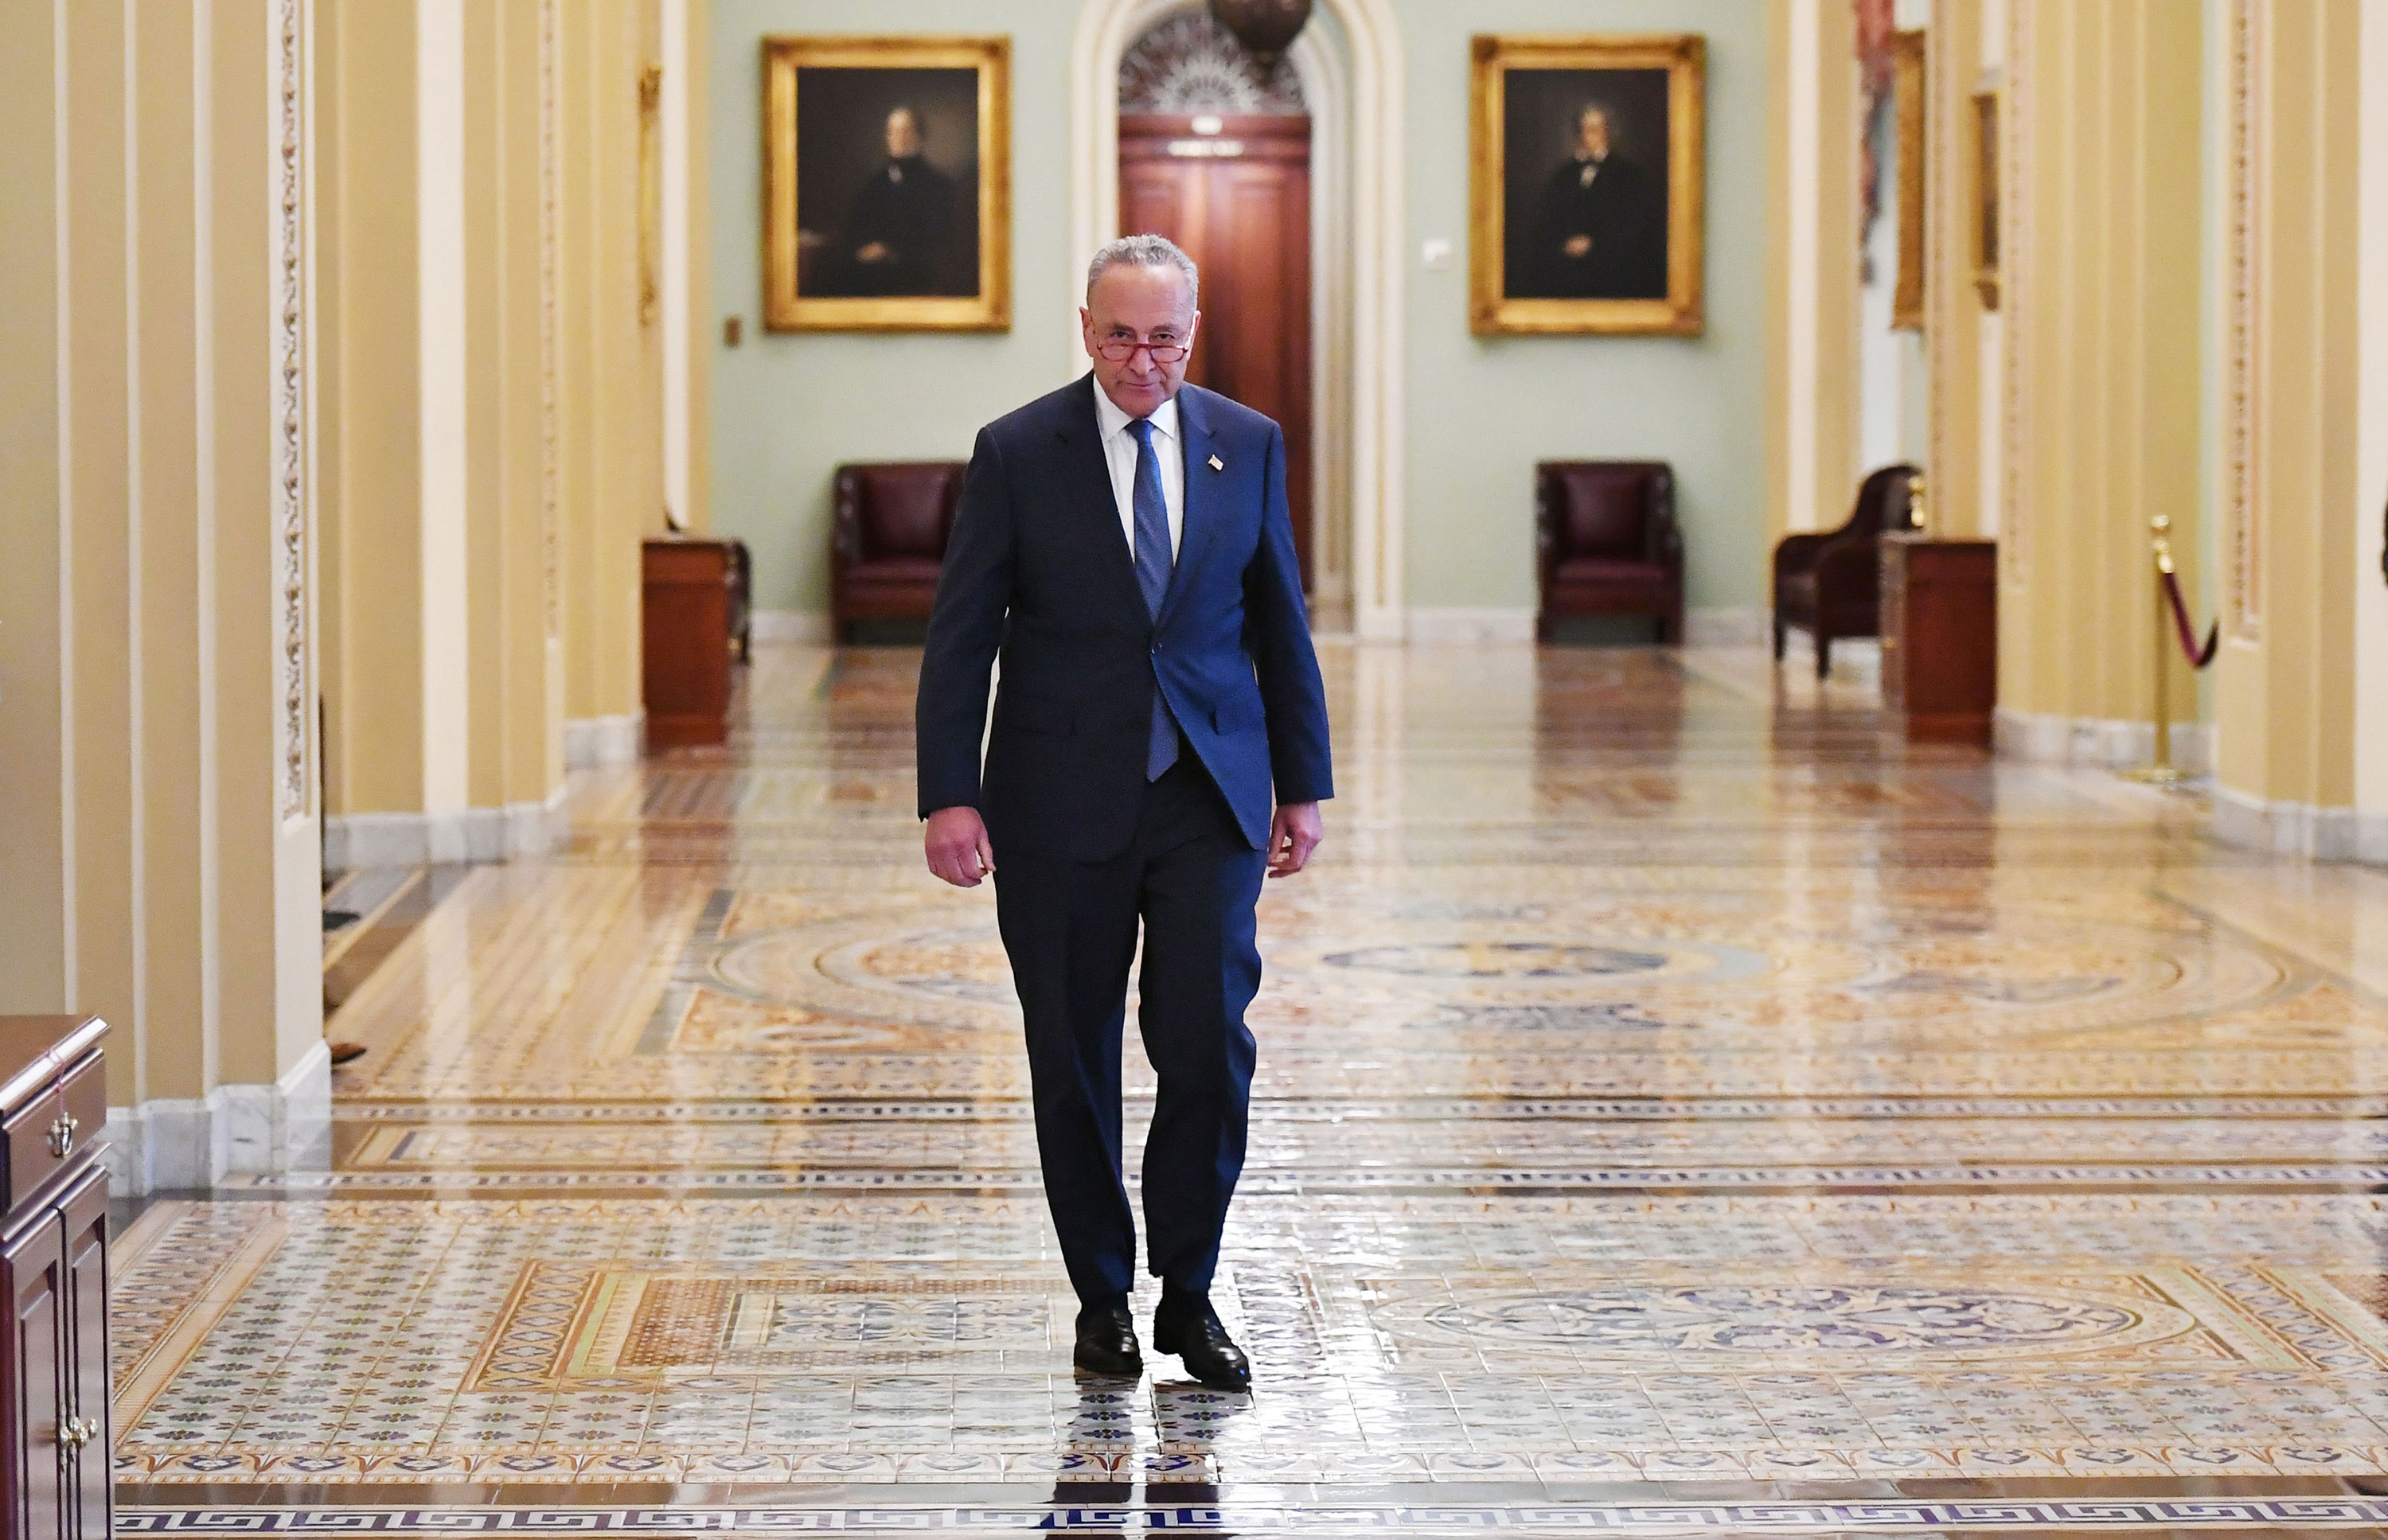 Schumer walks to his office after speaking on the Senate floor.